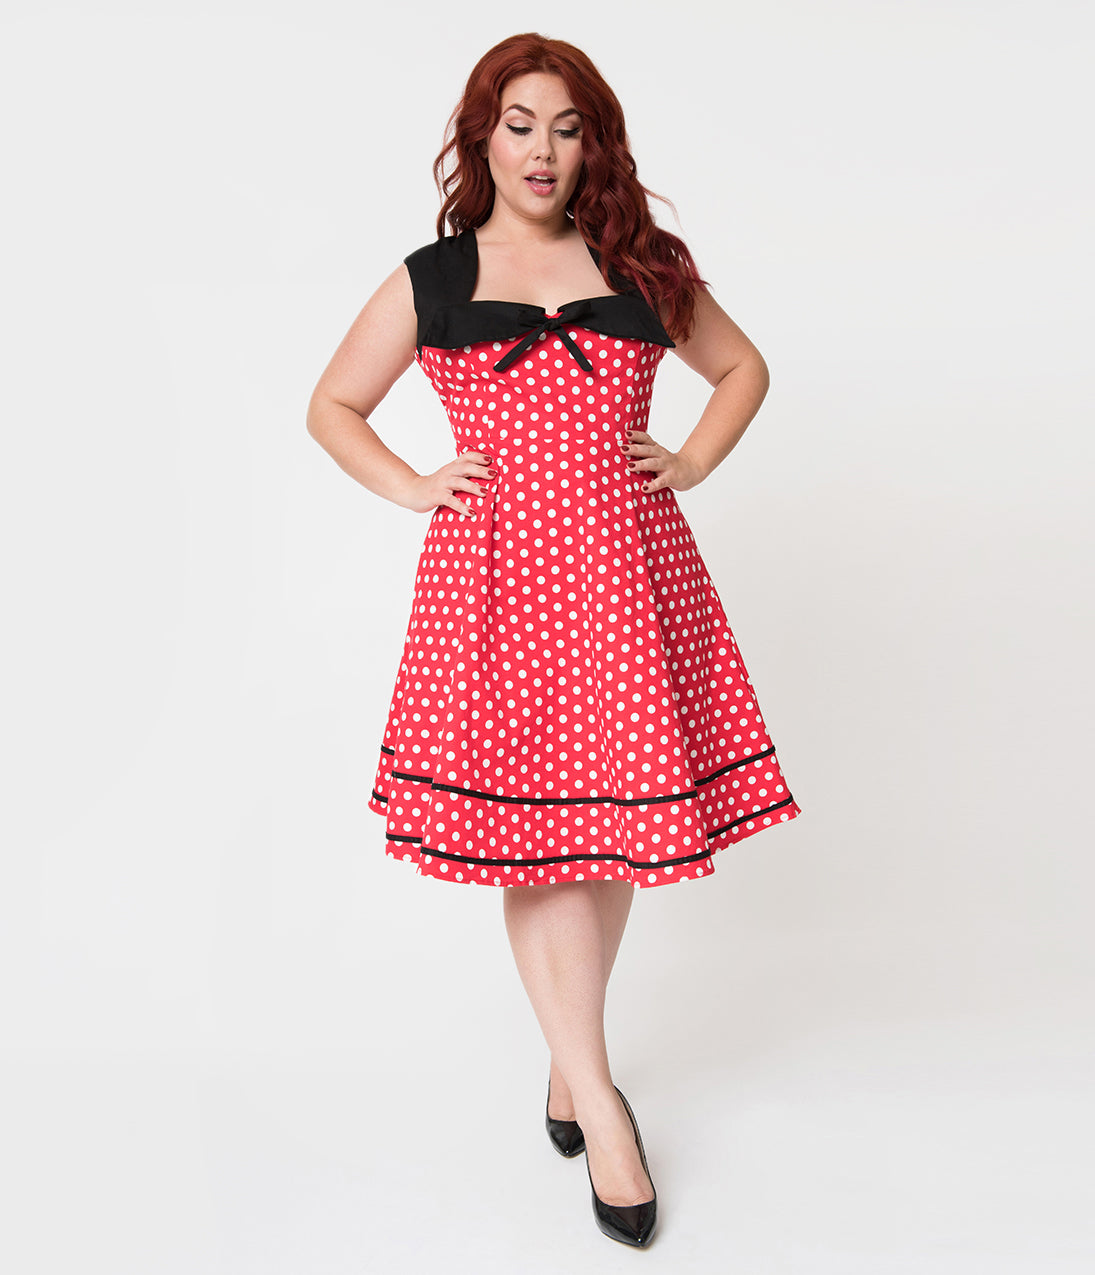 Vintage Polka Dot Dresses – 50s Spotty and Ditsy Prints Plus Size Vintage Style Red  White Polka Dot Cotton Flare Dress $58.00 AT vintagedancer.com